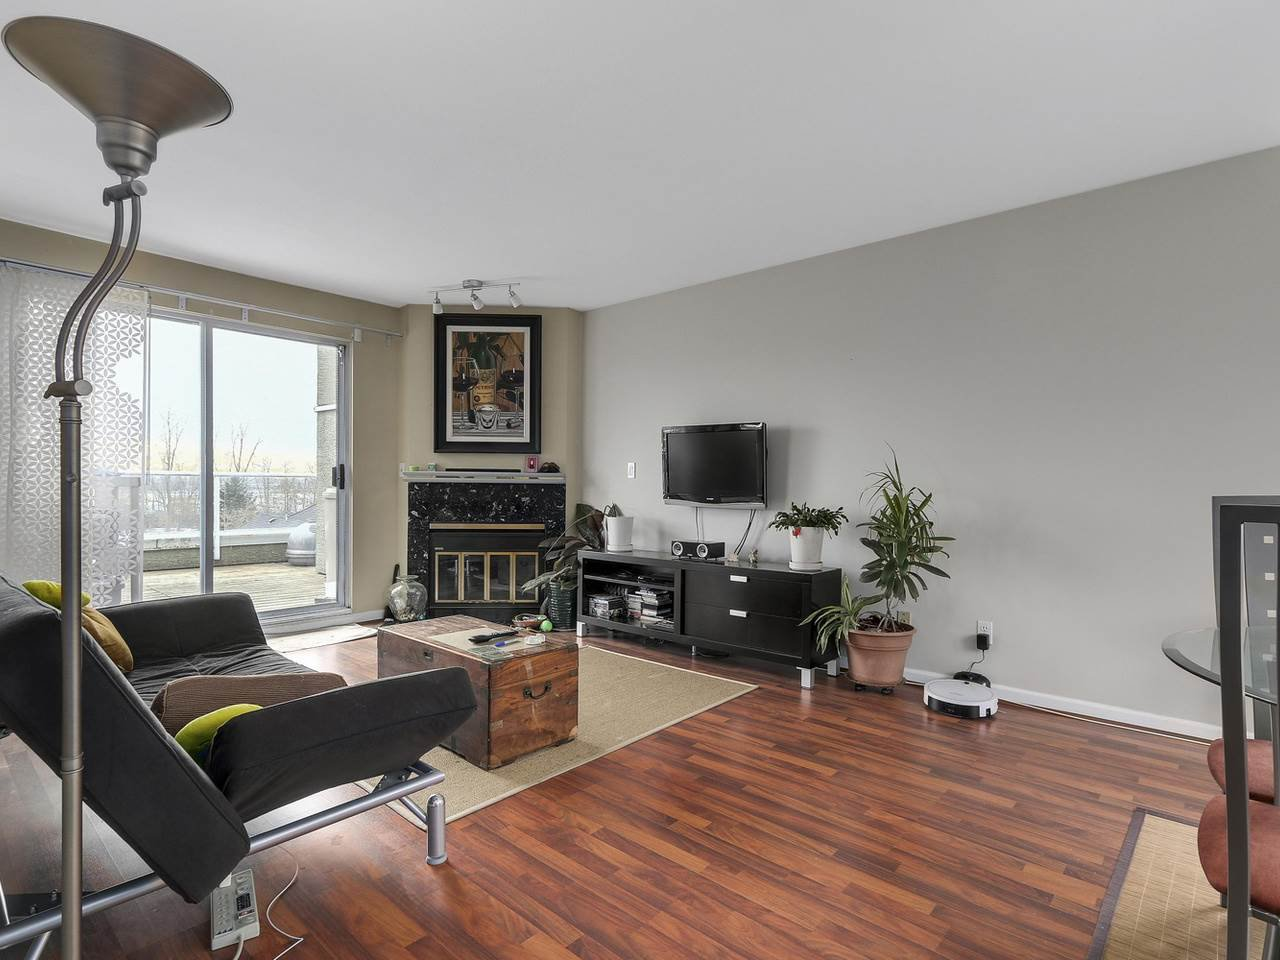 Photo 2: Photos: 2345 QUAYSIDE COURT in Vancouver: Fraserview VE Townhouse for sale (Vancouver East)  : MLS®# R2154138